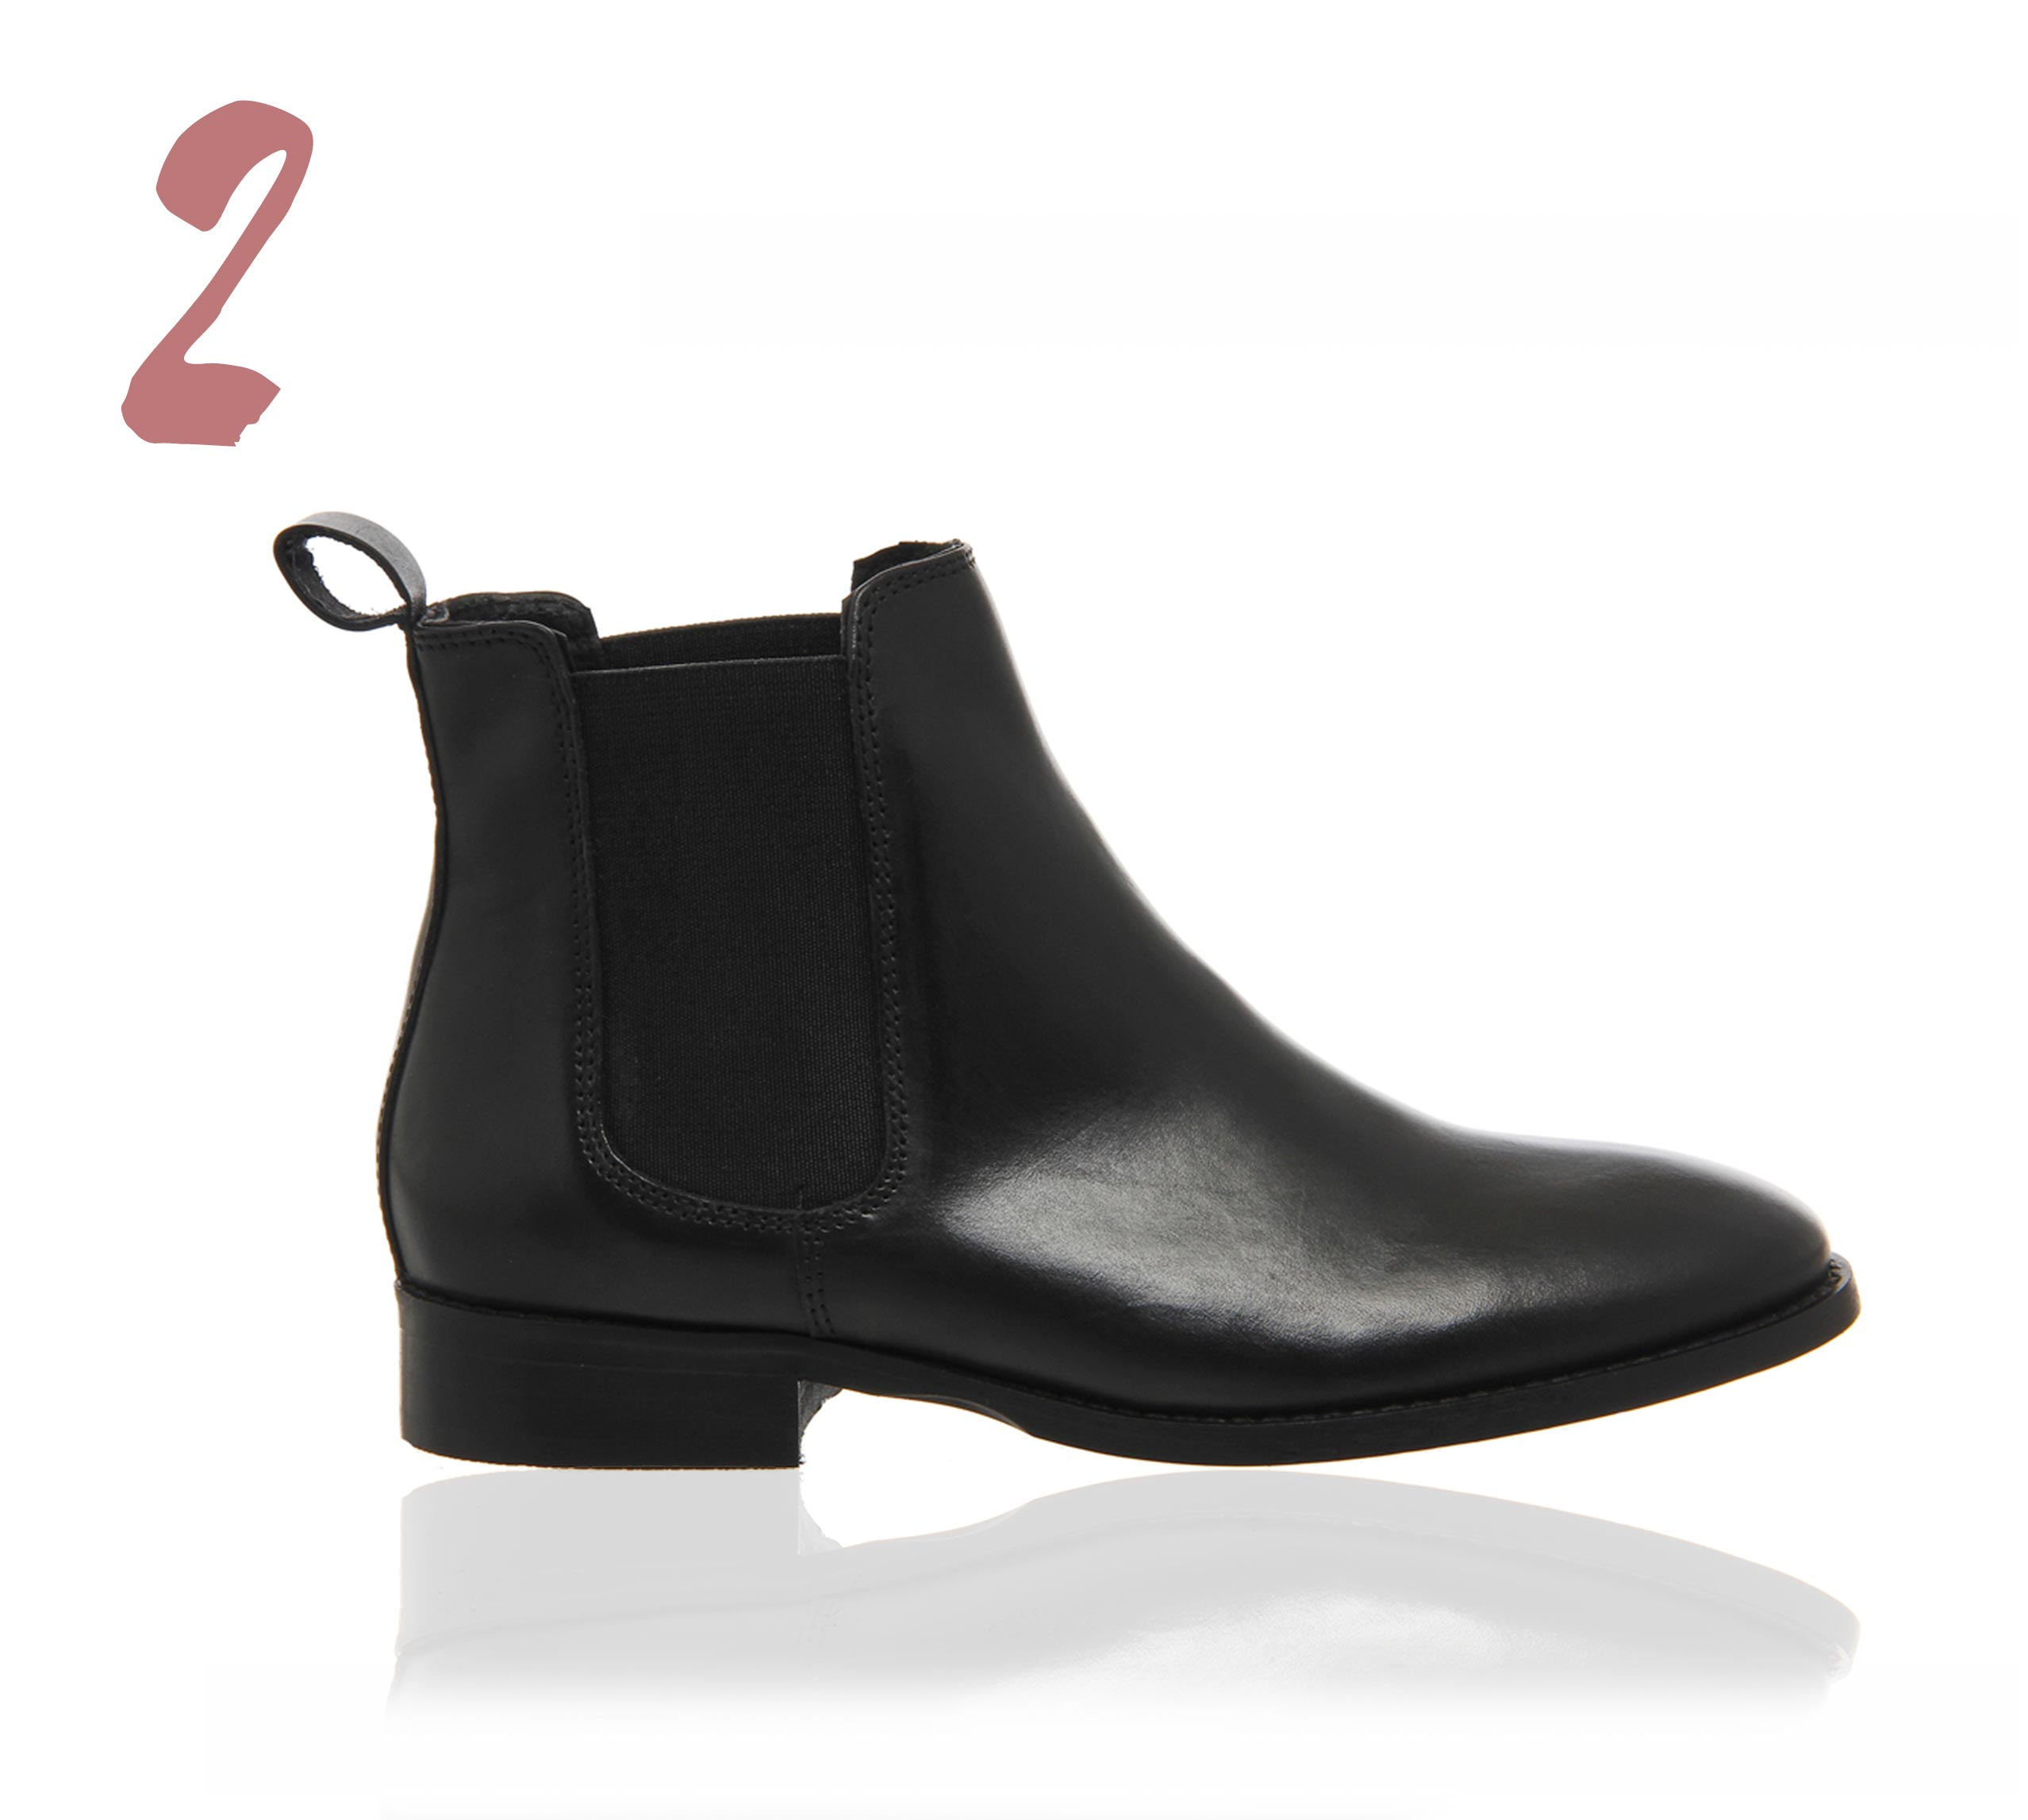 Ankle Boots for Women | Black, Brown and Grey Ankle Boots - OFFICE